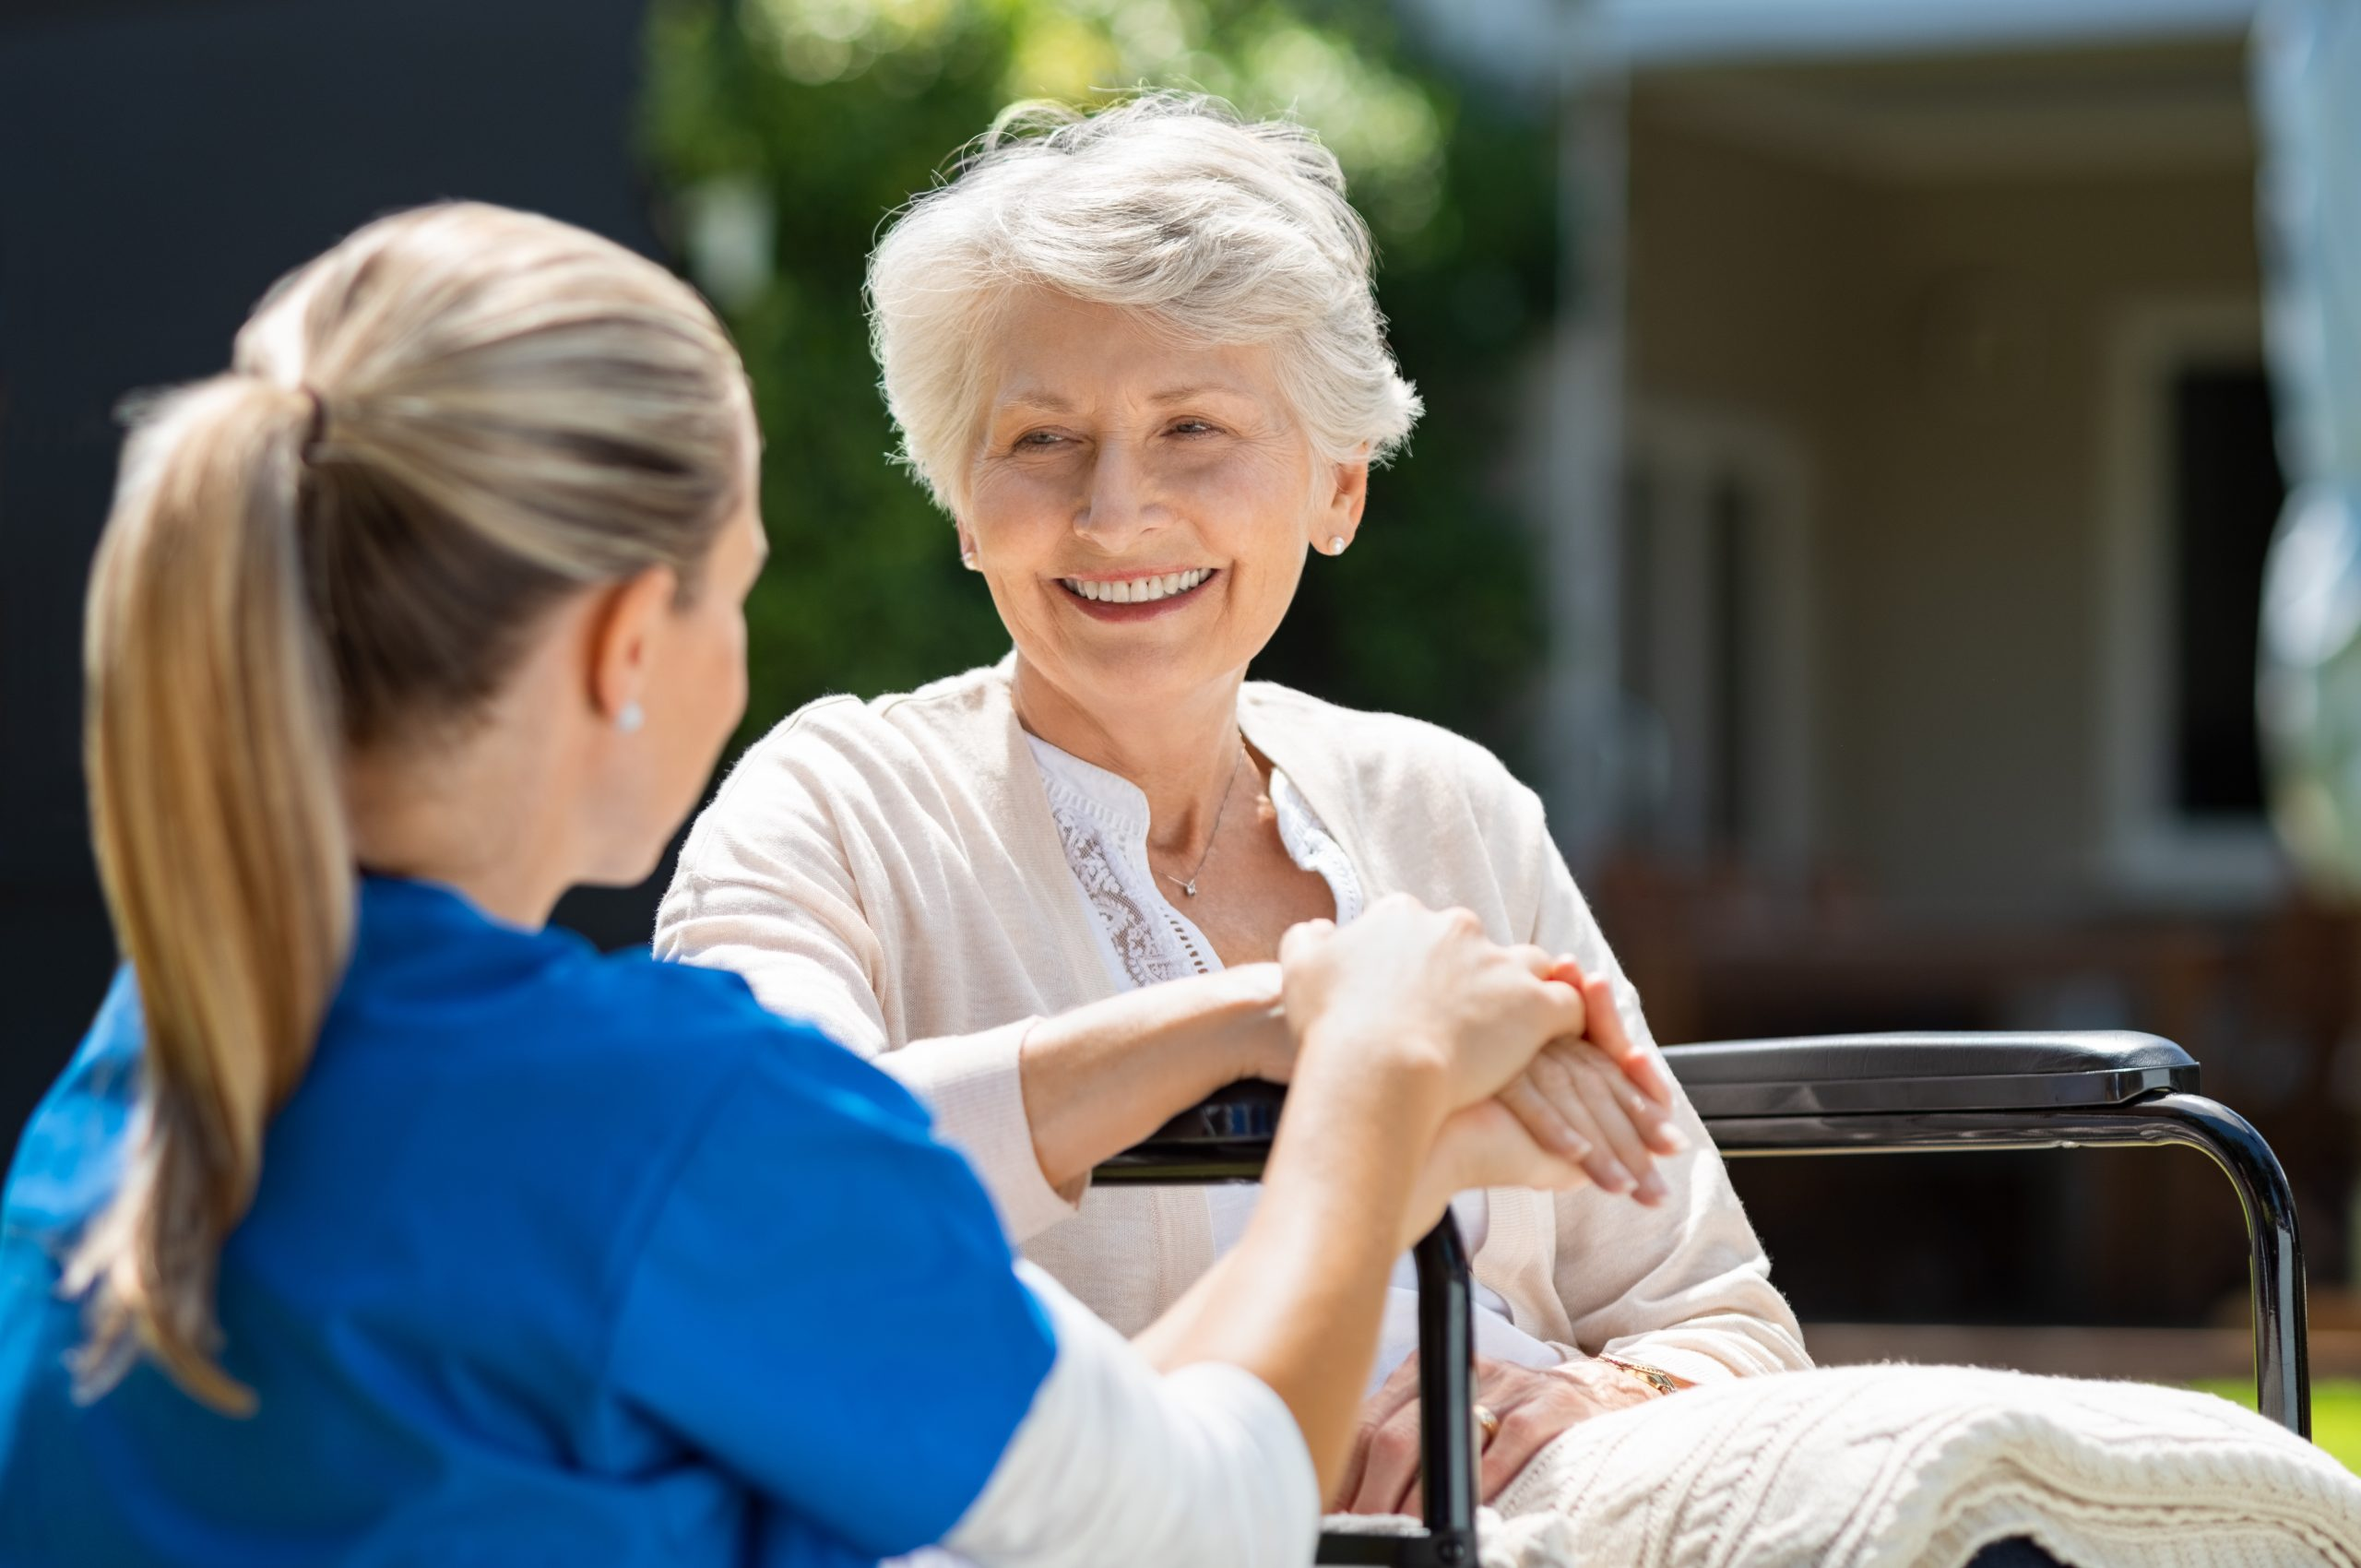 The Changing Risk Landscape for Care Providers and its Impact on Insurance